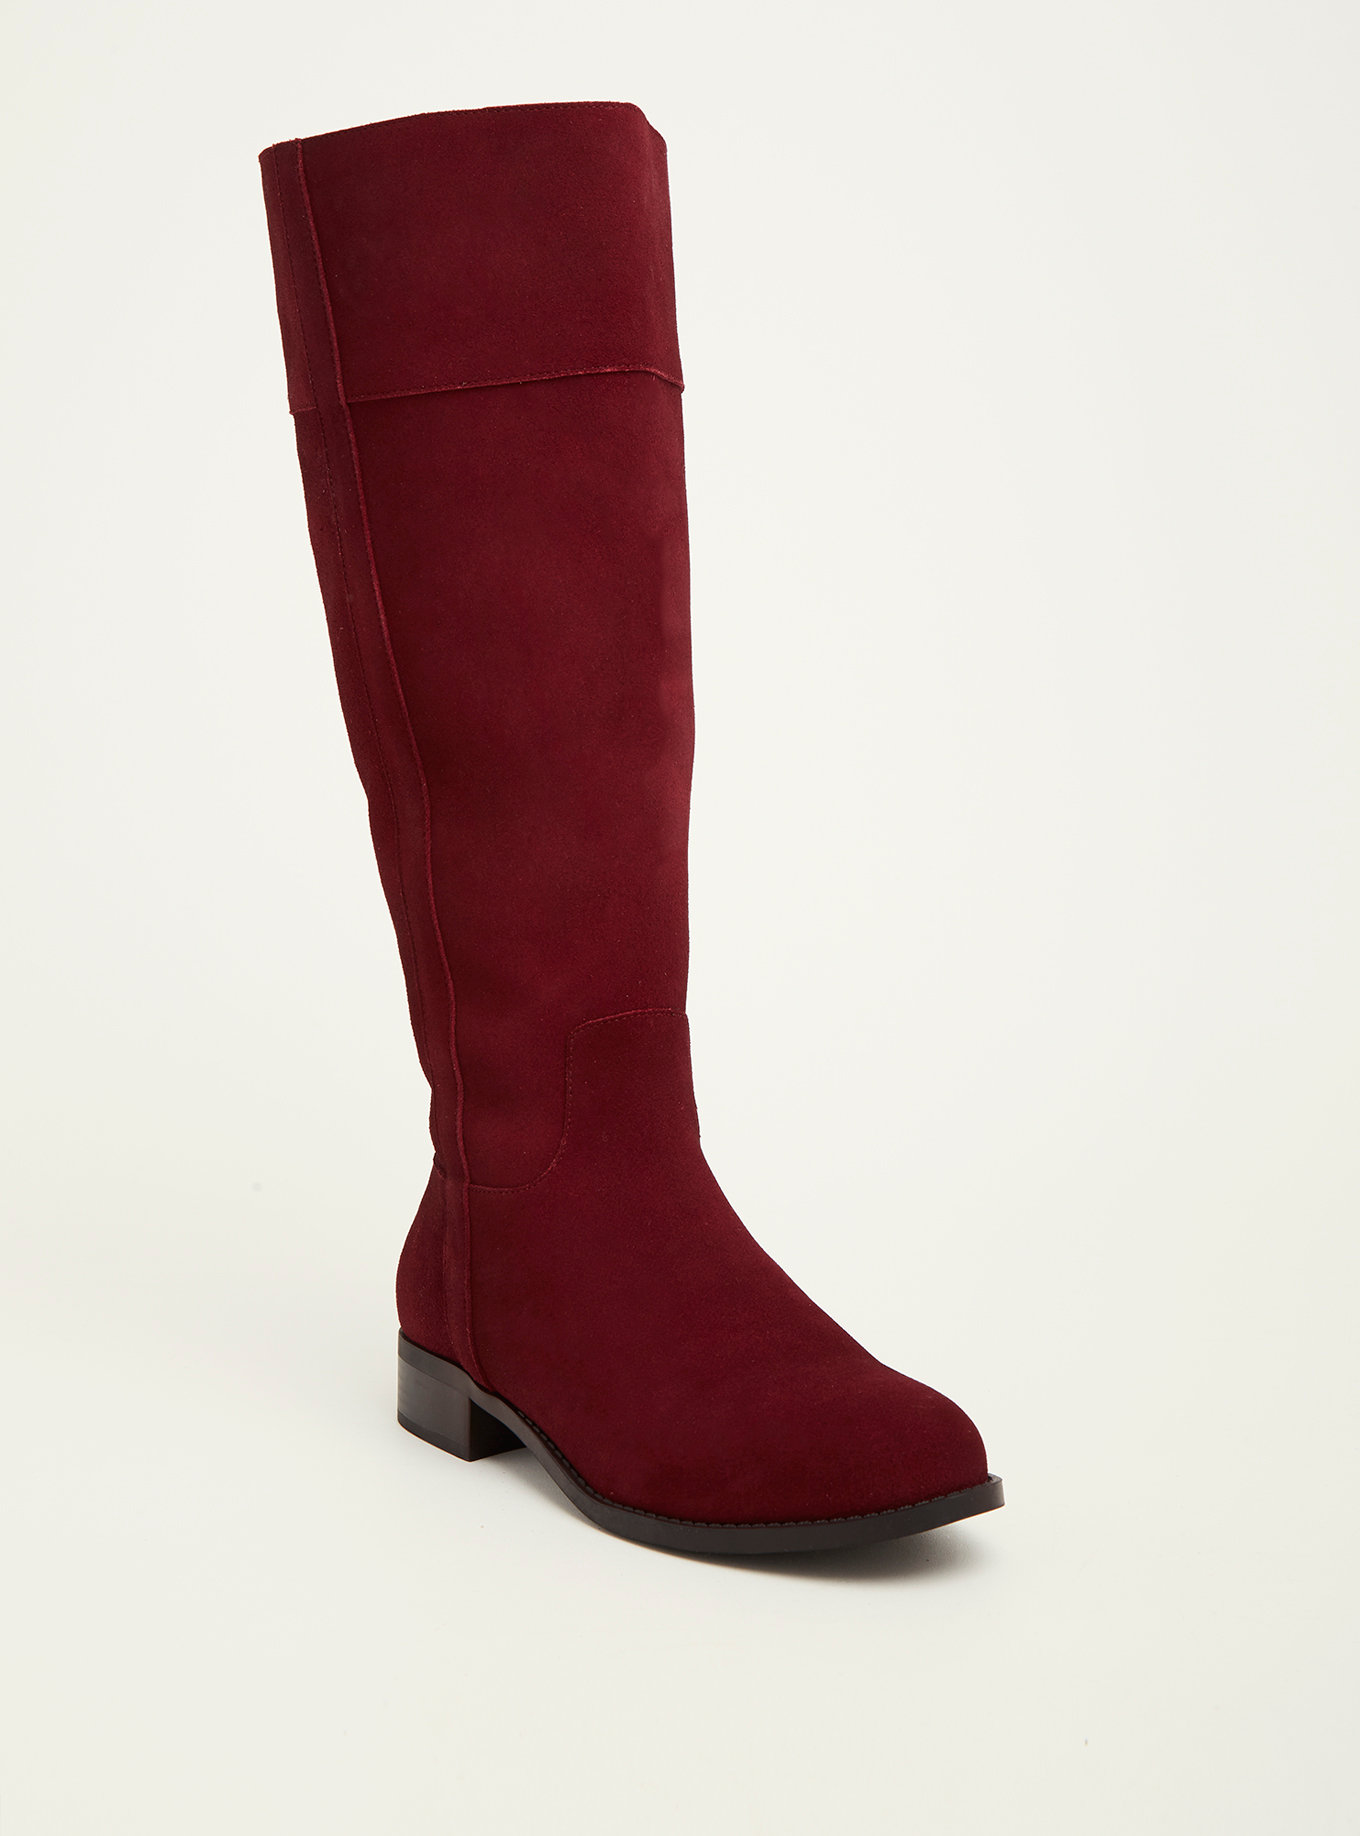 5f9b3dc5c7e 16 Stylish Wide Calf Boots Up To Size 13